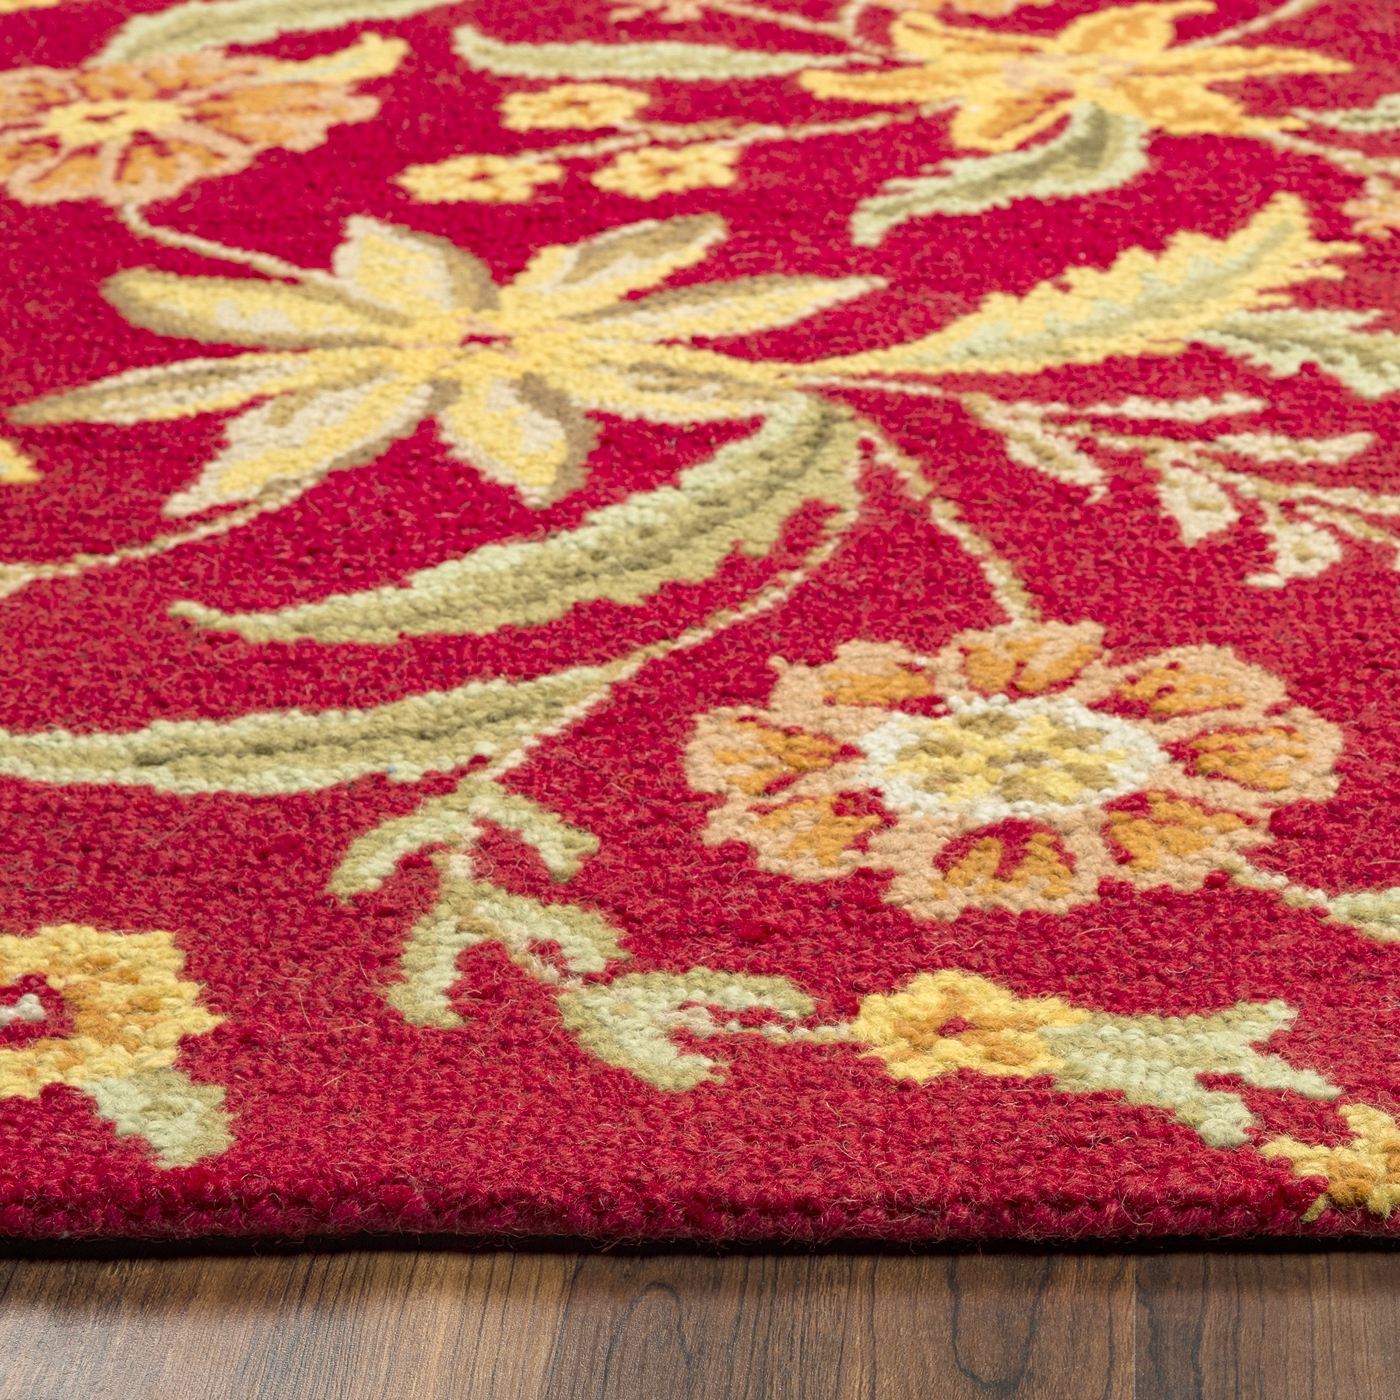 Country Floral New Zealand Wool Runner Rug In Red Orange